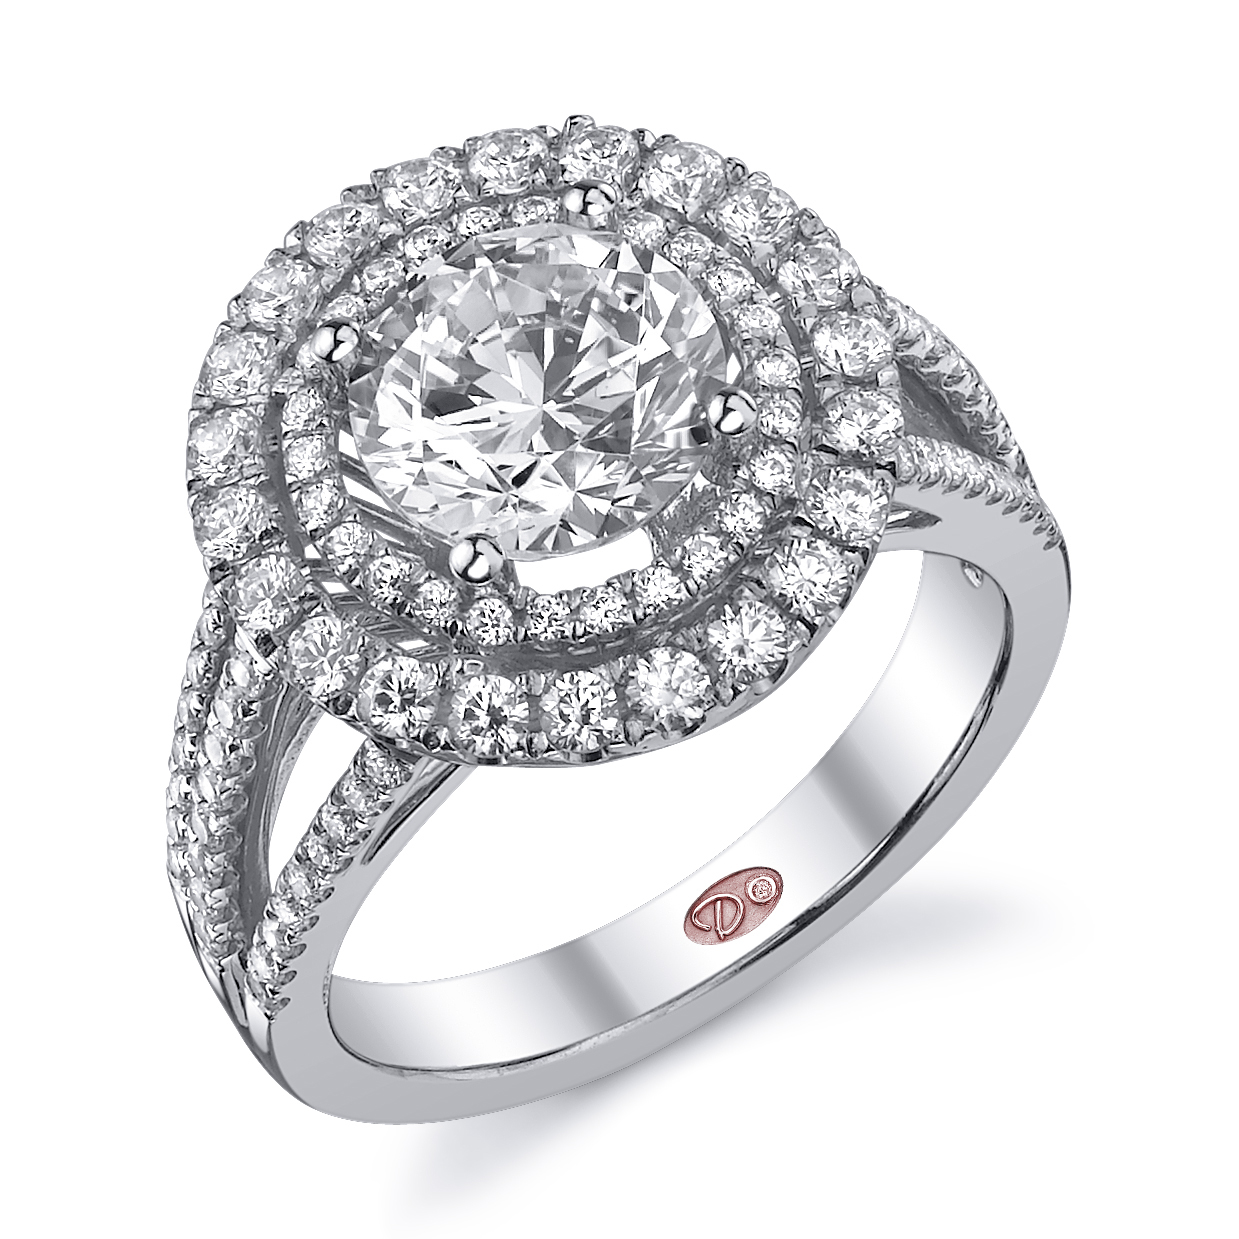 double halo engagement ring halo wedding rings Style DW